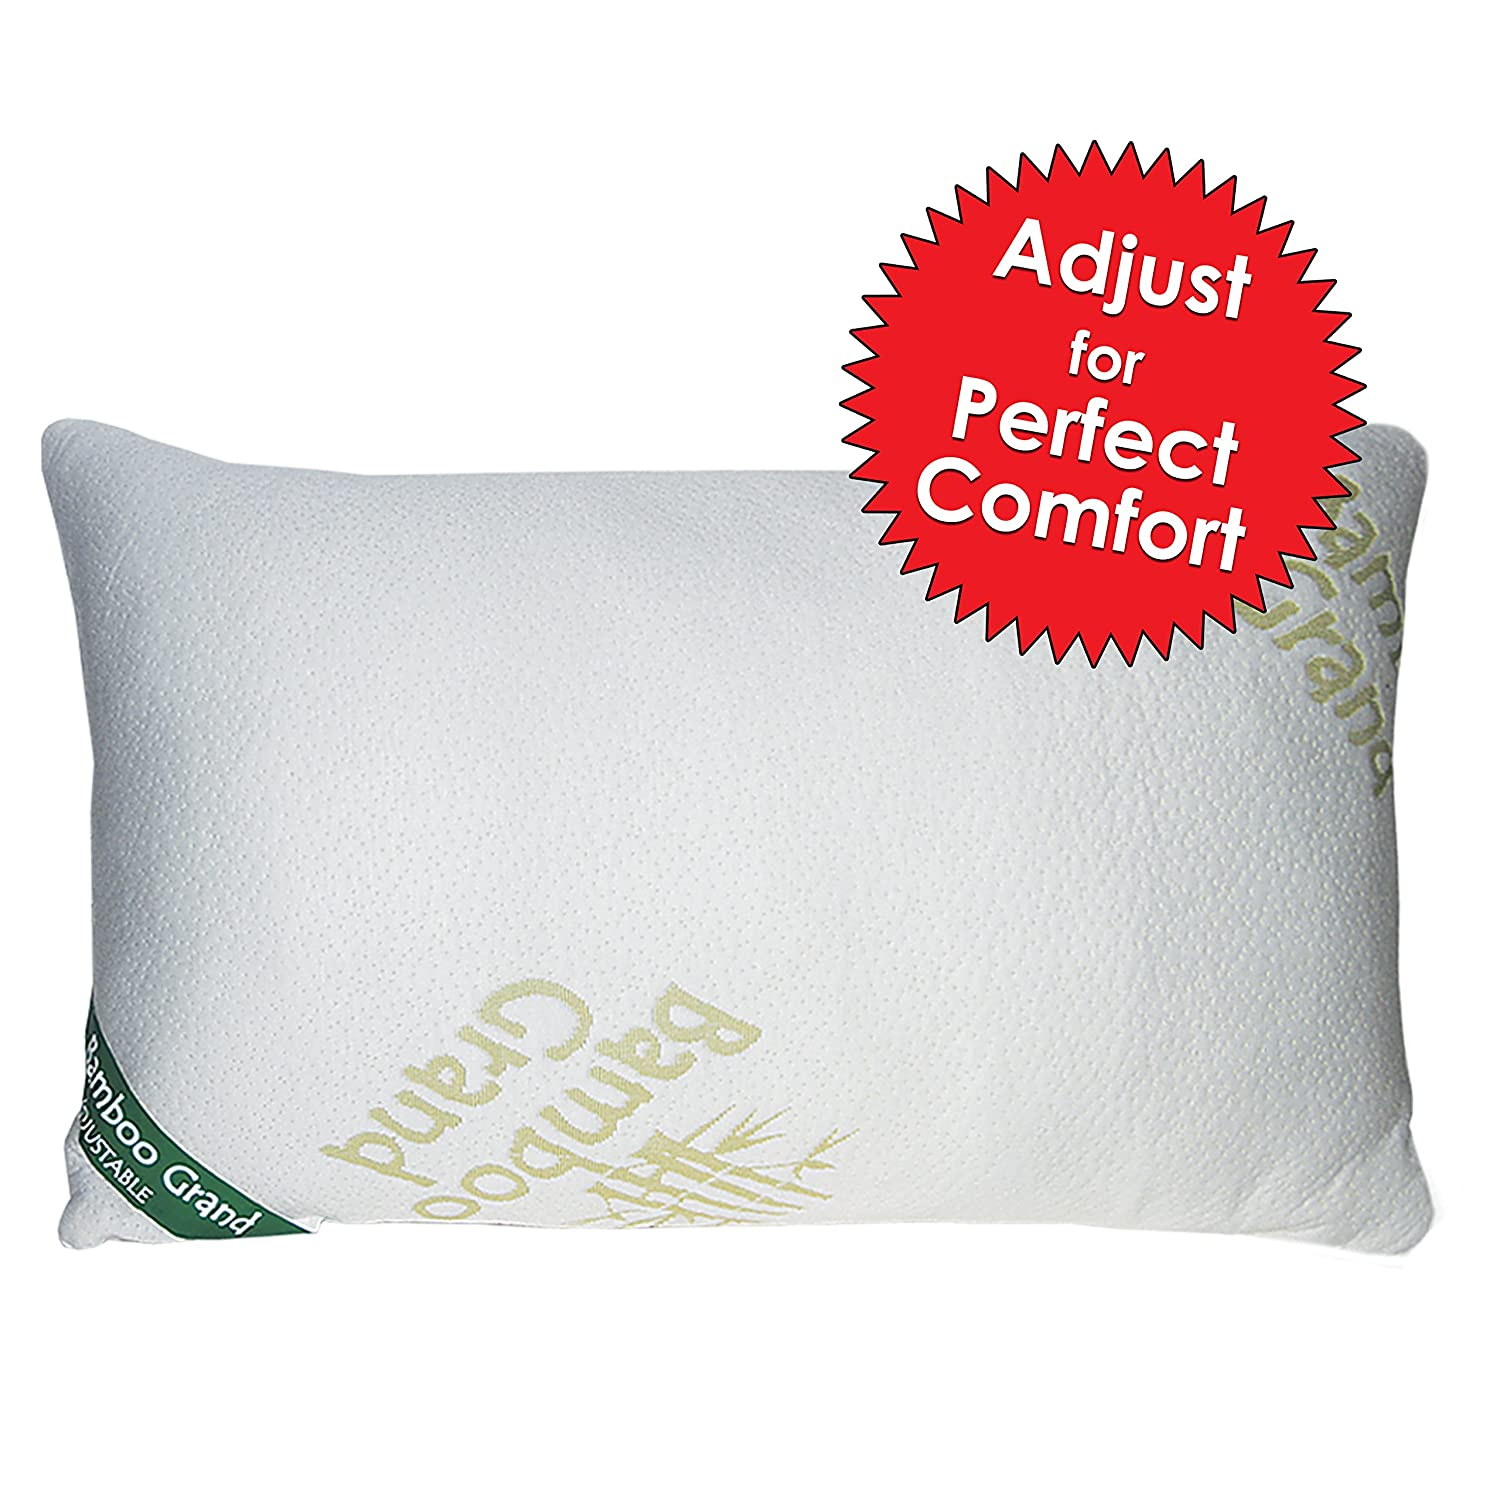 bamboo new and improved adjustable shredded memory foam pillow firm micro ve ebay. Black Bedroom Furniture Sets. Home Design Ideas